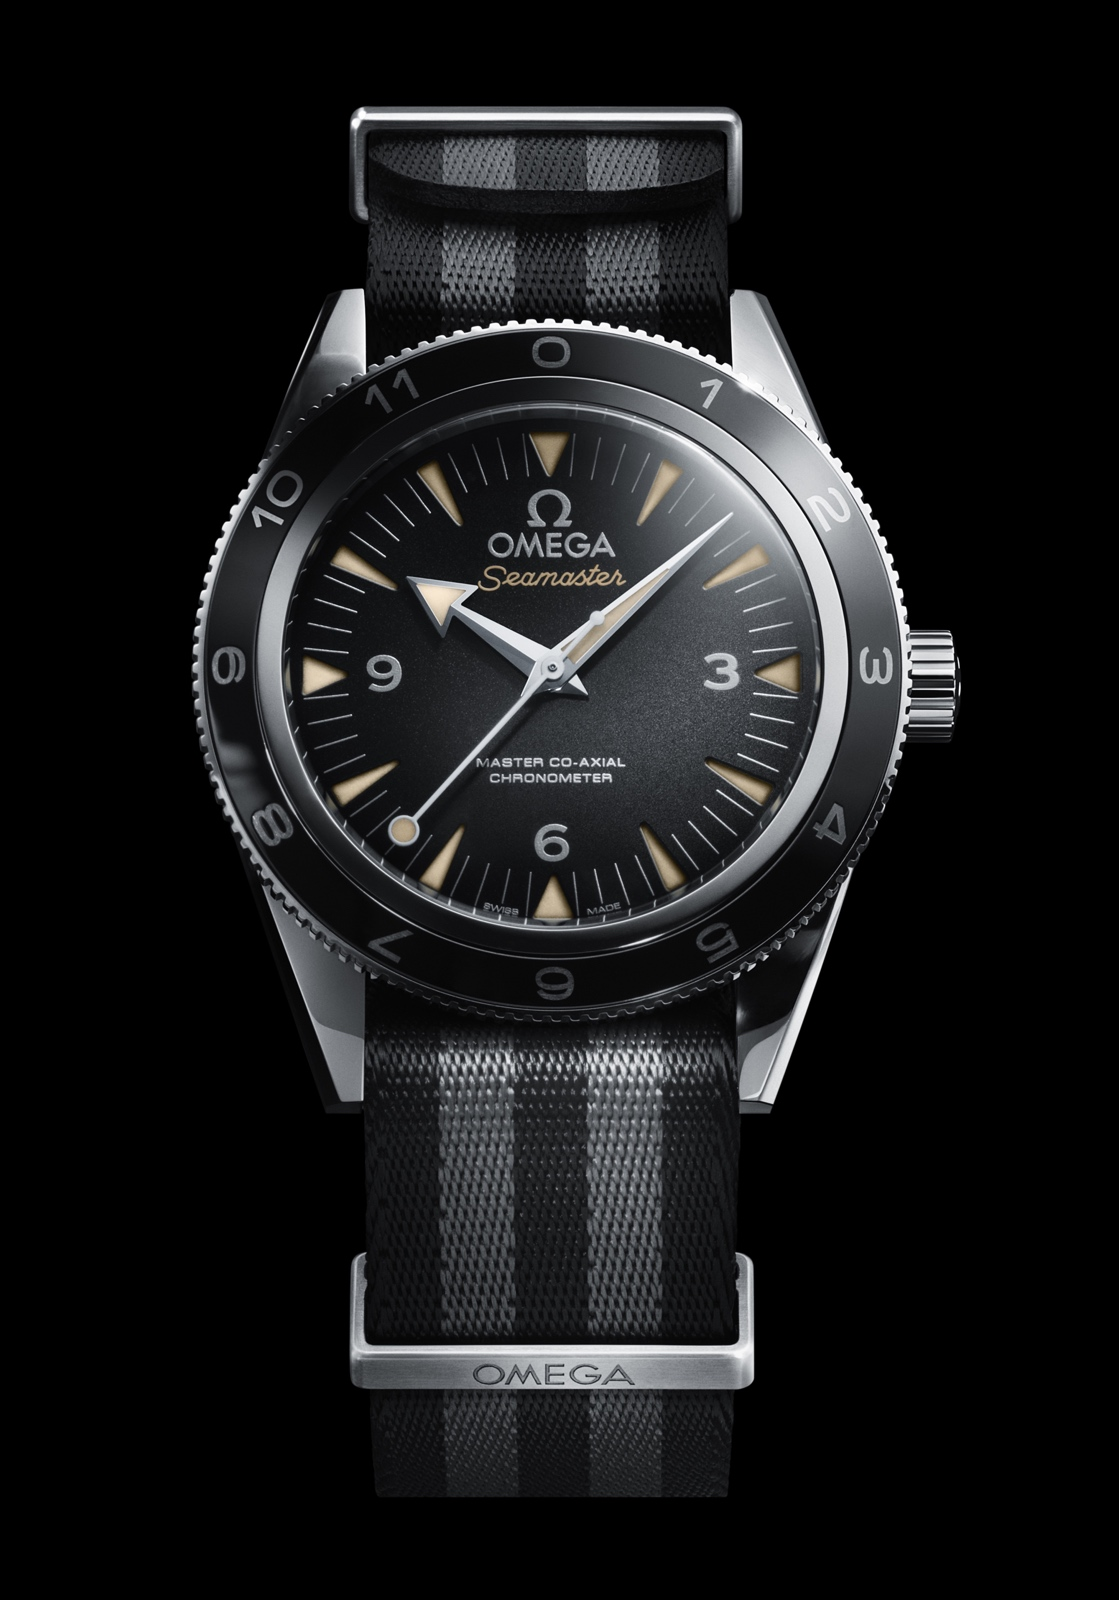 OMEGA Seamaster 300 Spectre front